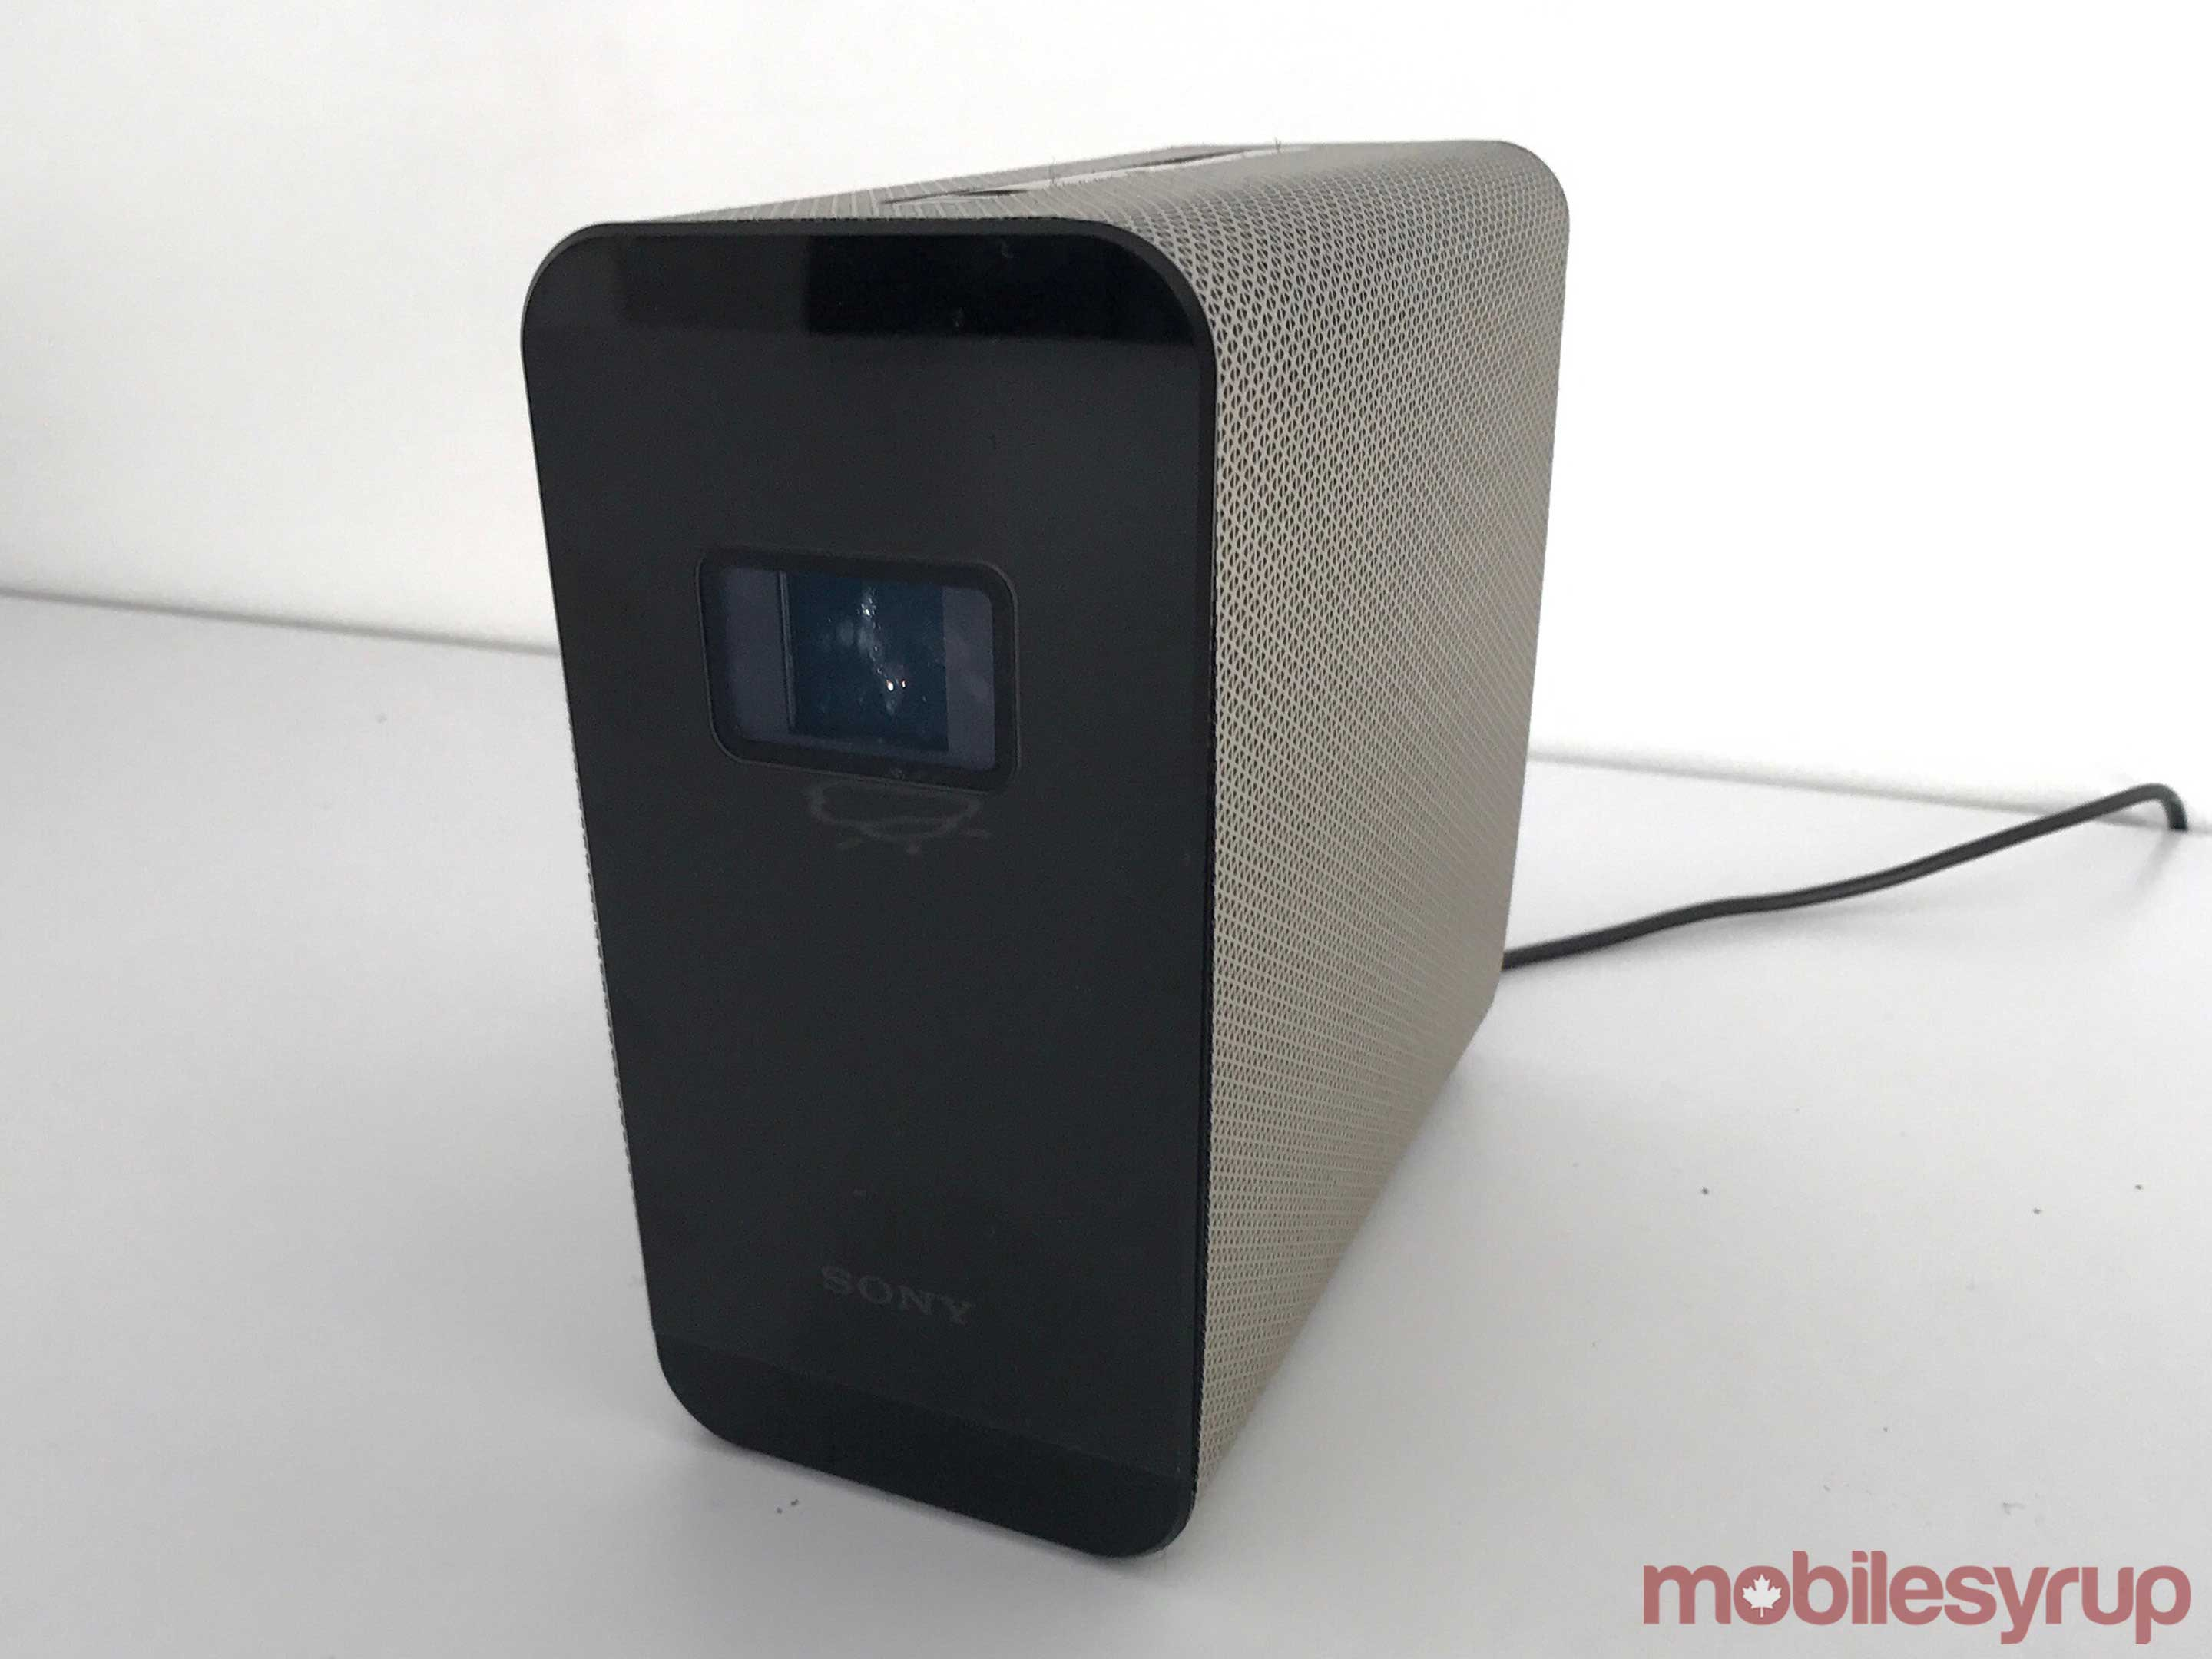 Xperia Touch front look